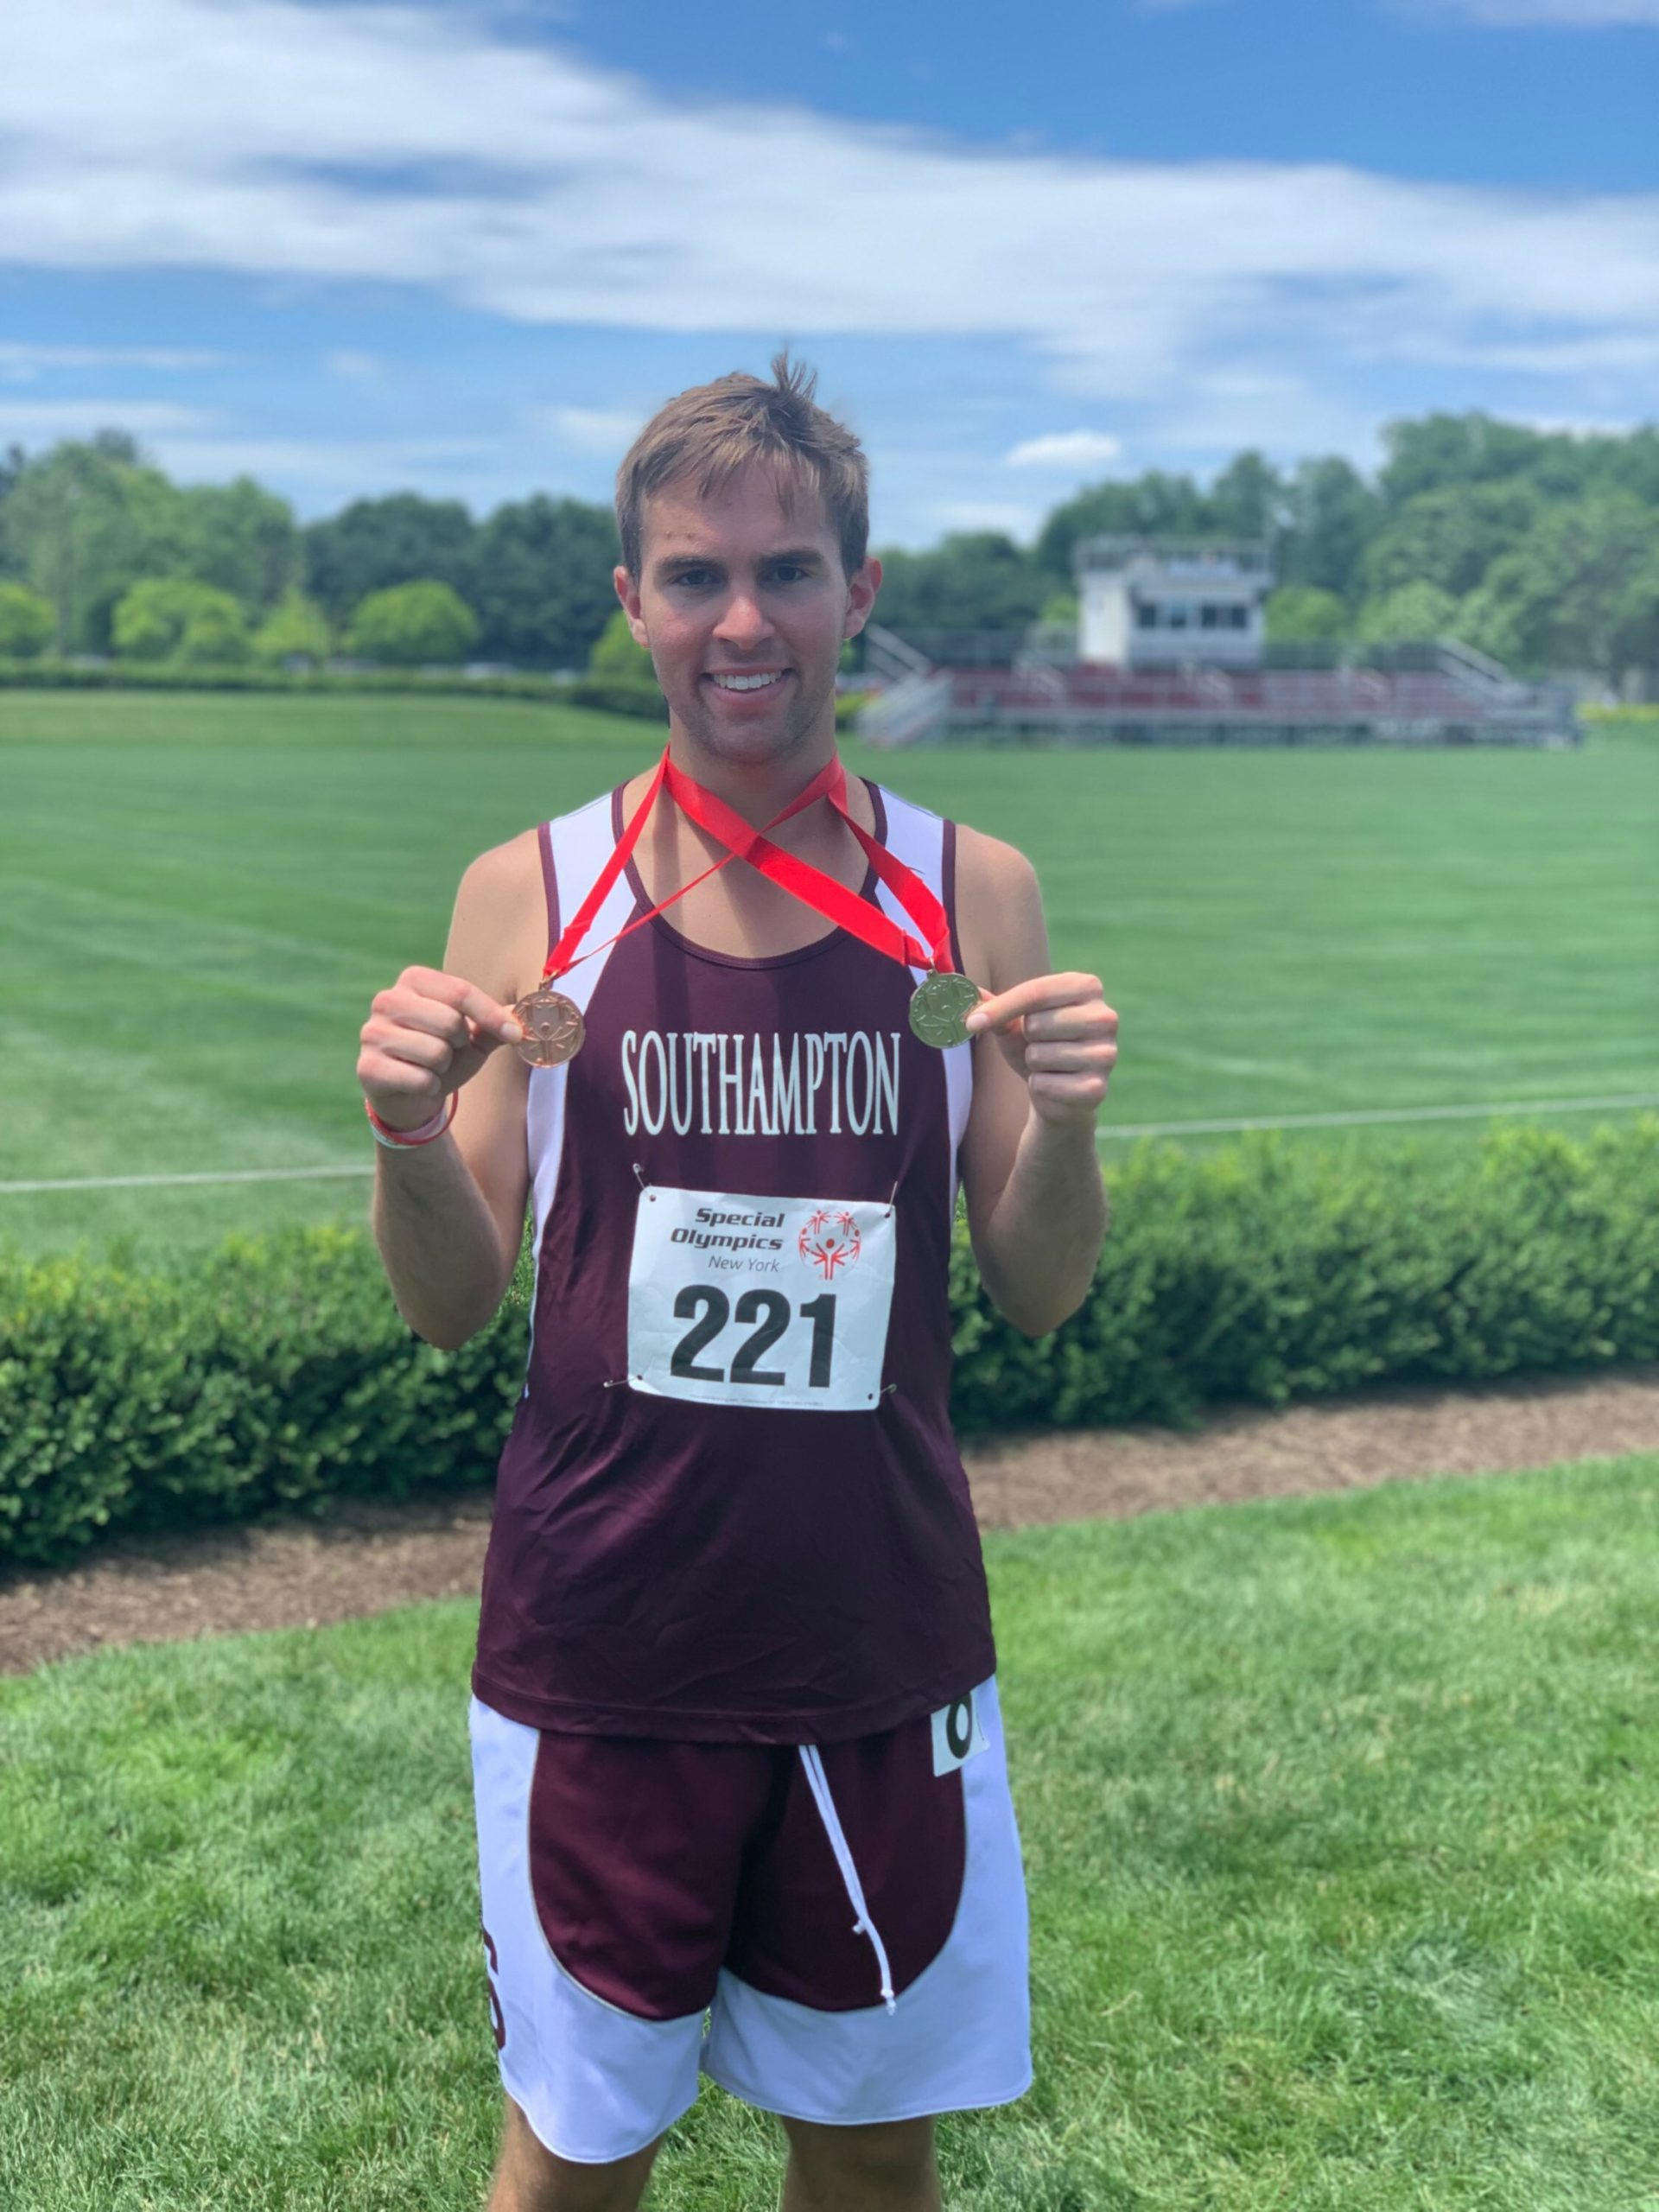 William Segarra with medals he won earlier this year.